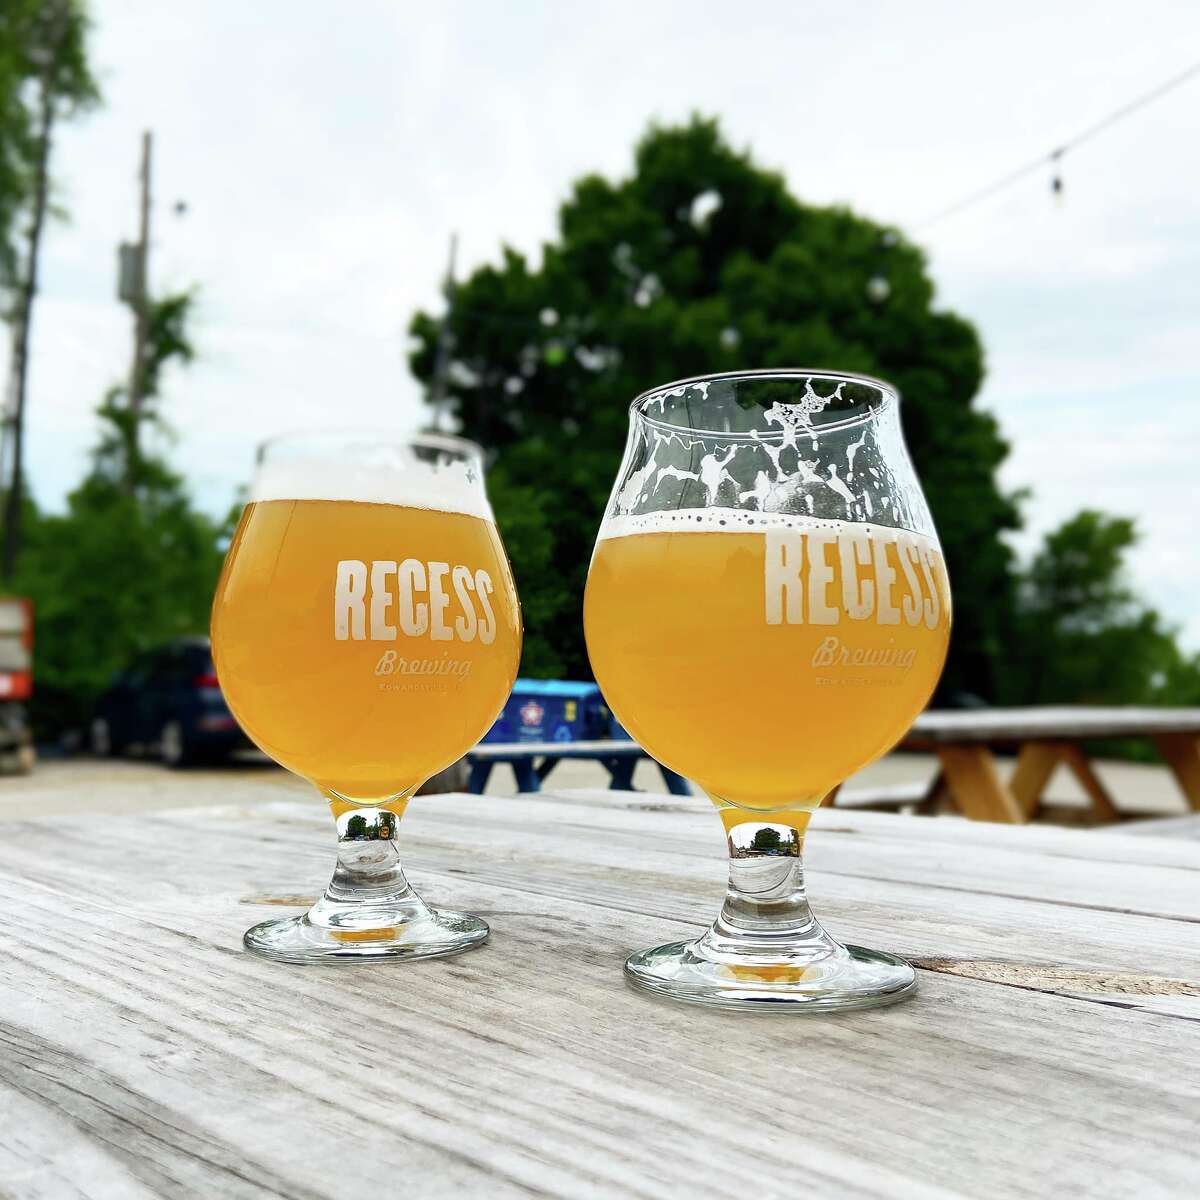 Recess Brewery in Edwardsville has a variety of beers to choose from this summer.